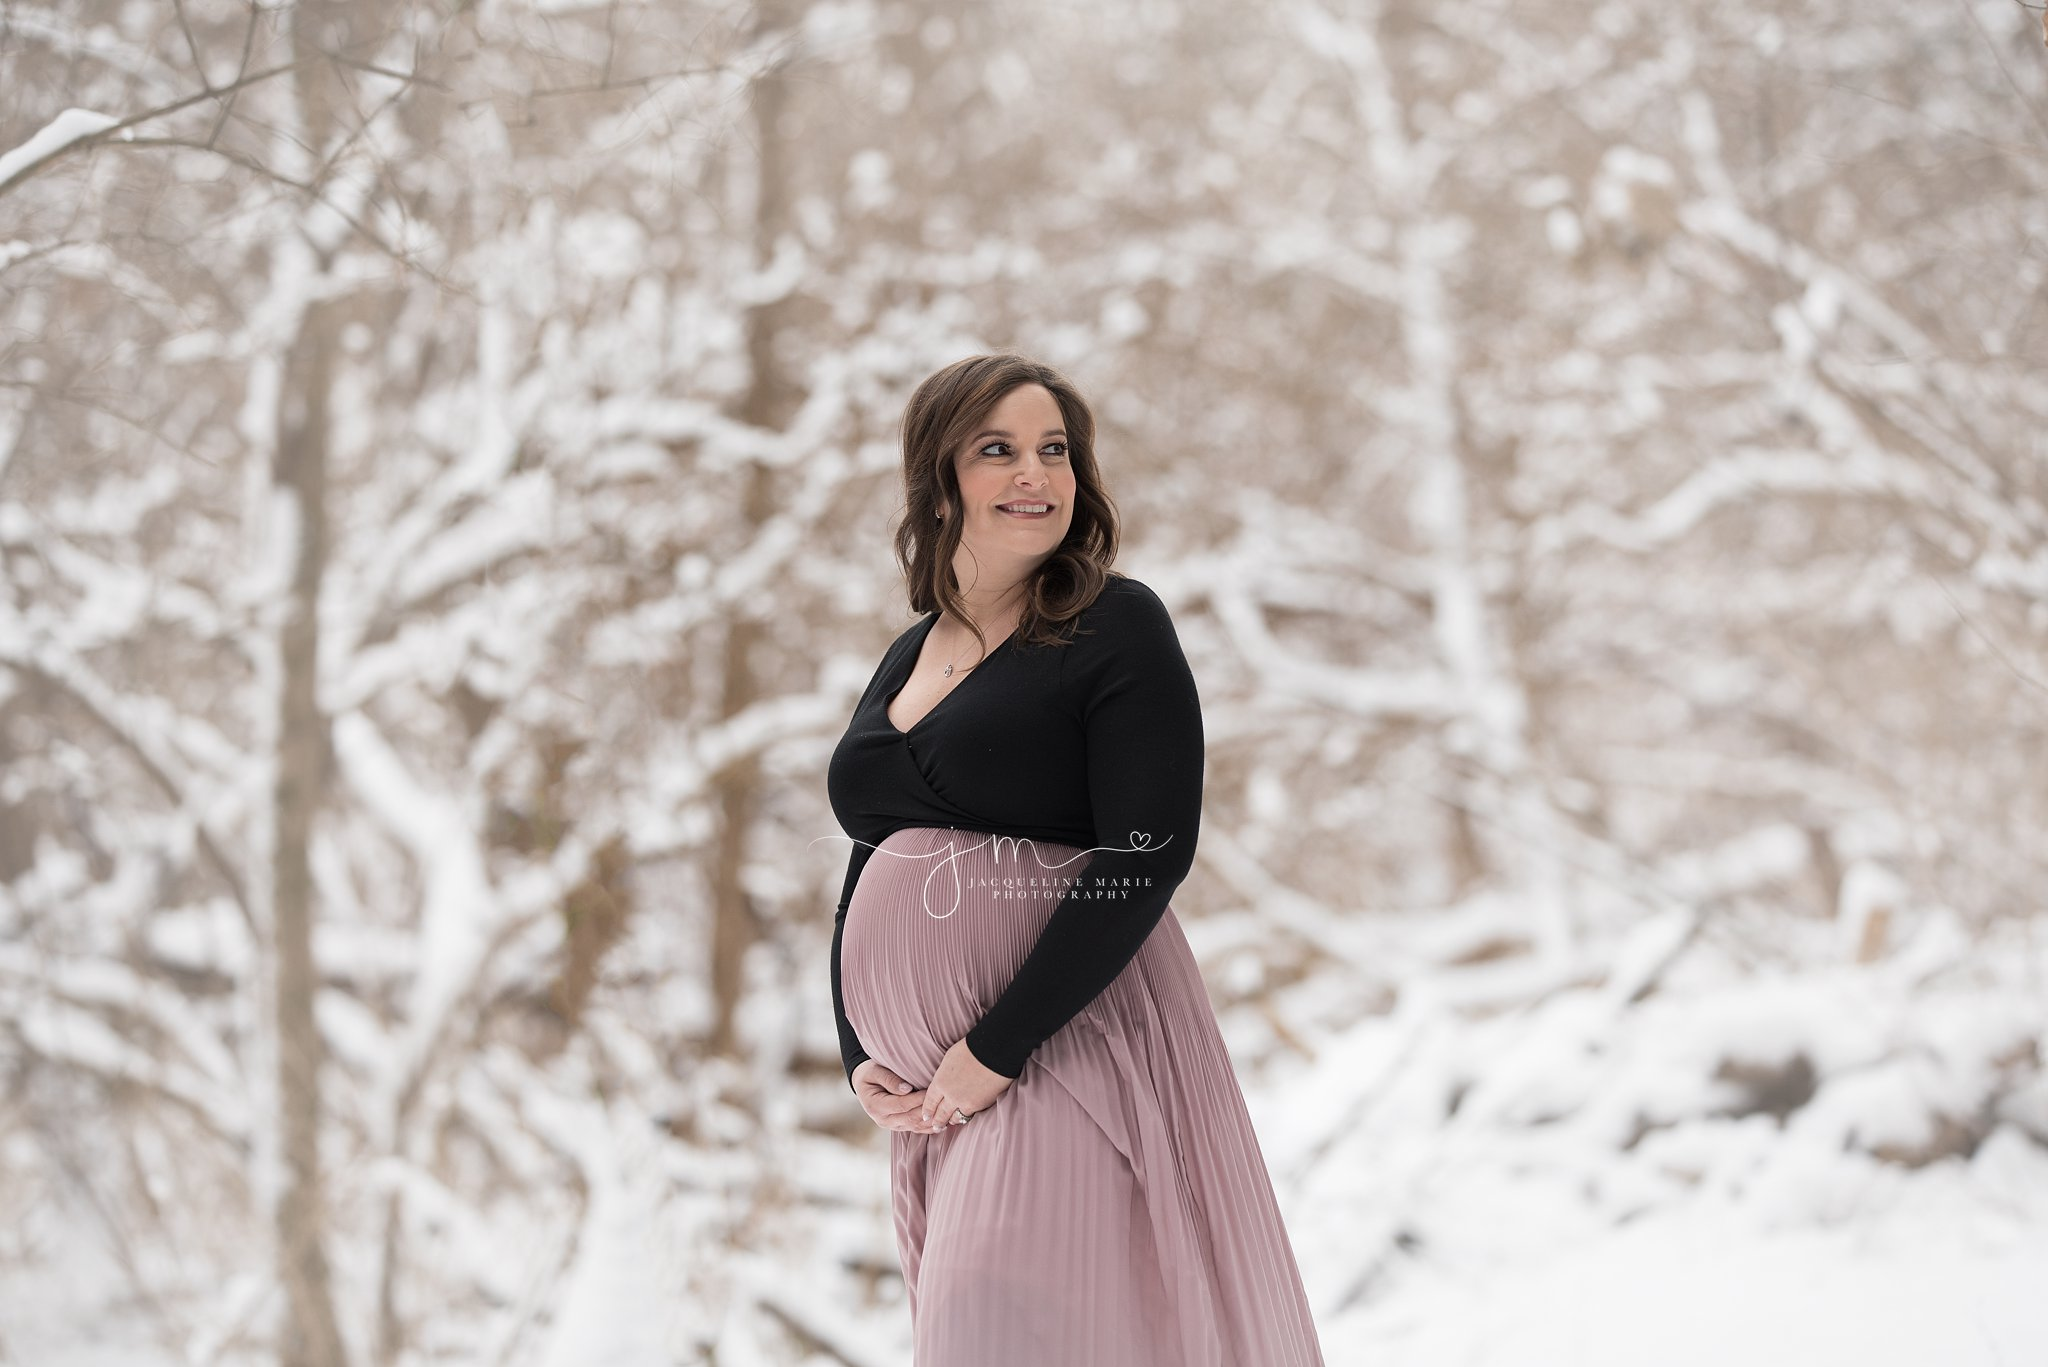 columbus ohio maternity photographer winter snowy session